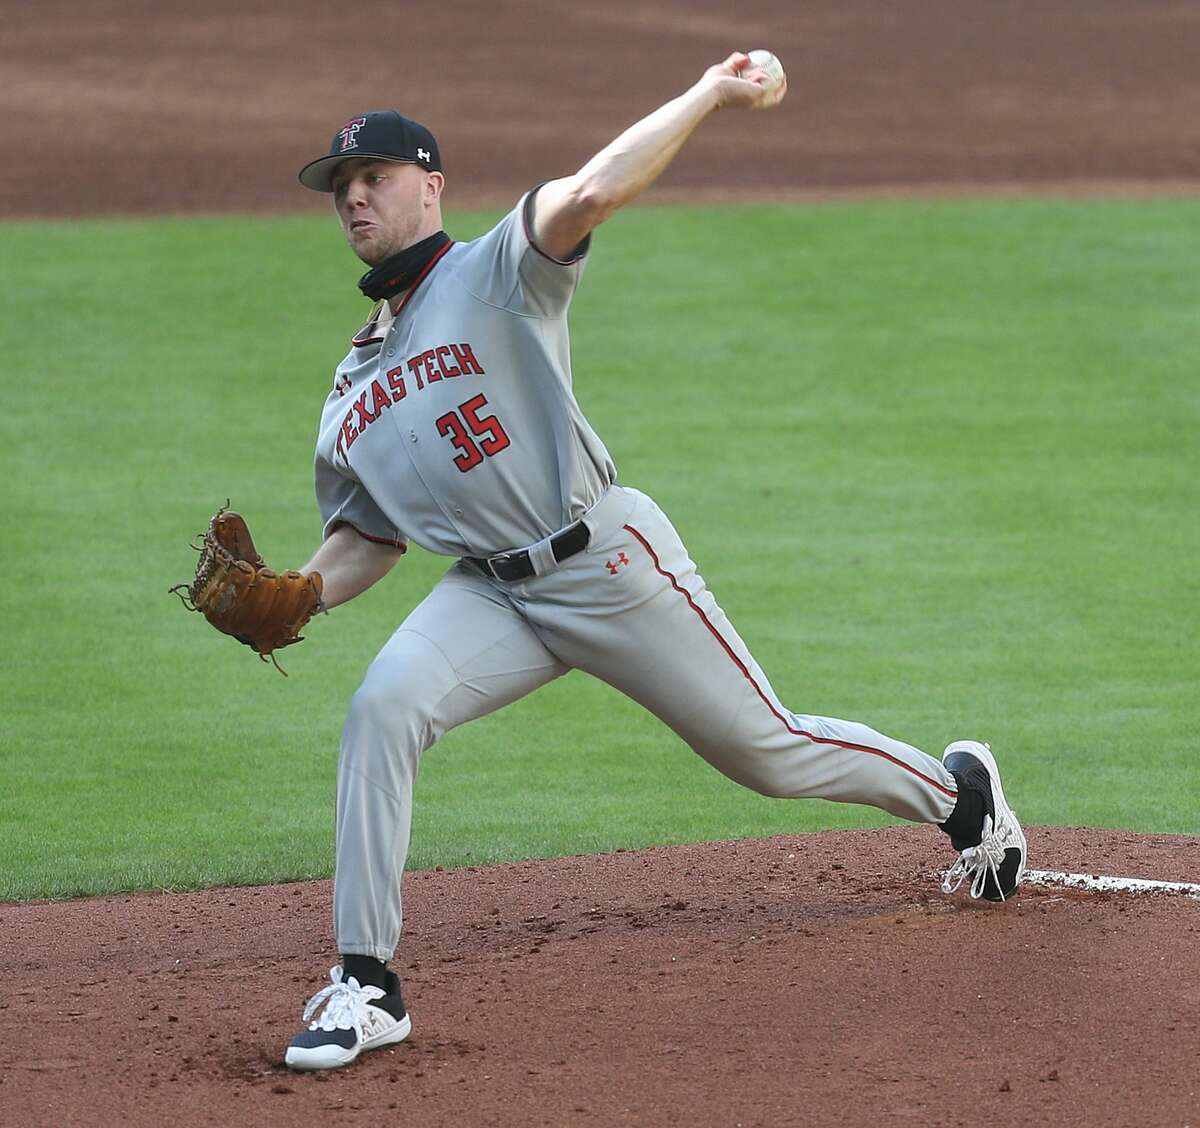 HOUSTON, TEXAS - MARCH 06: Patrick Monteverde #35 of the Texas Tech Red Raiders pitches in the first inning against the Sam Houston State Bearkats at Minute Maid Park on March 06, 2021 in Houston, Texas. (Photo by Bob Levey/Getty Images)